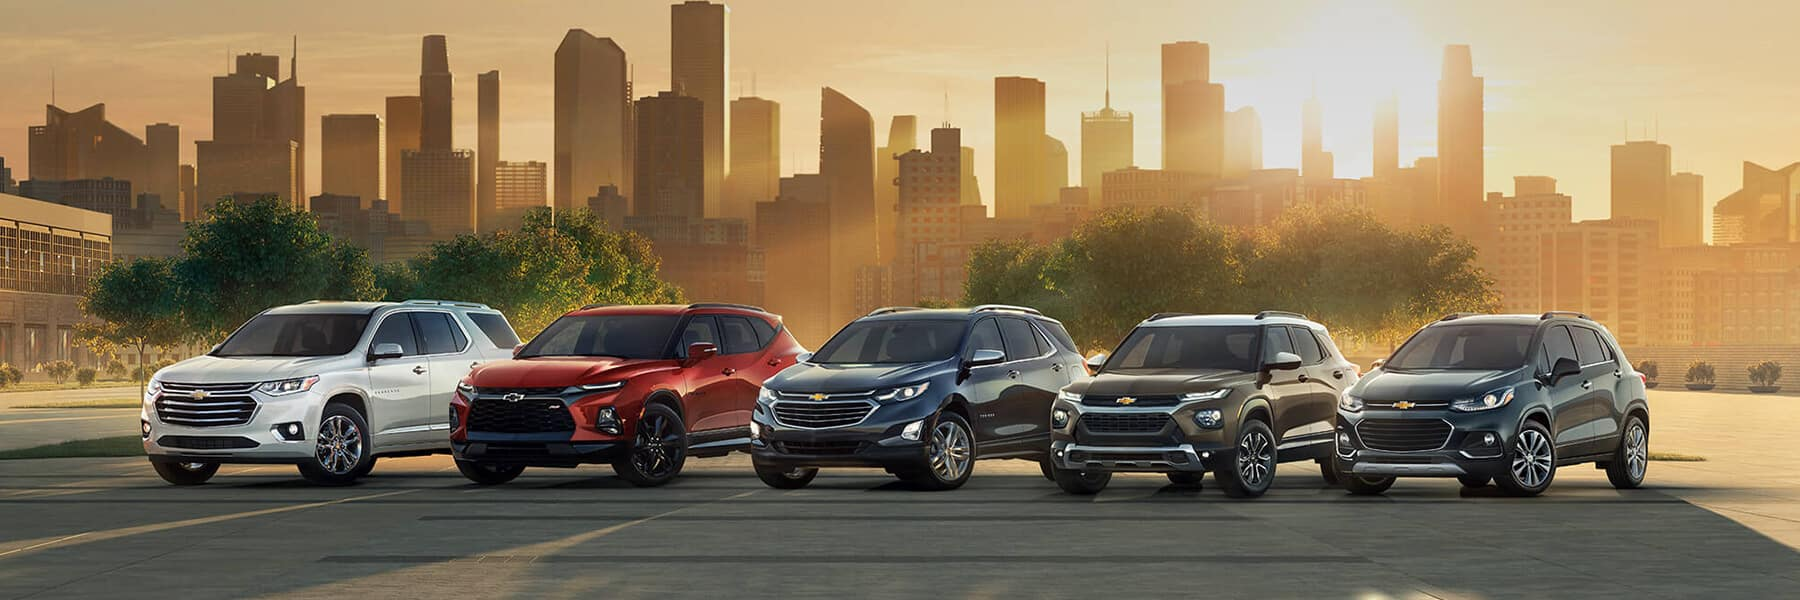 2020 Chevy SUV Lineup